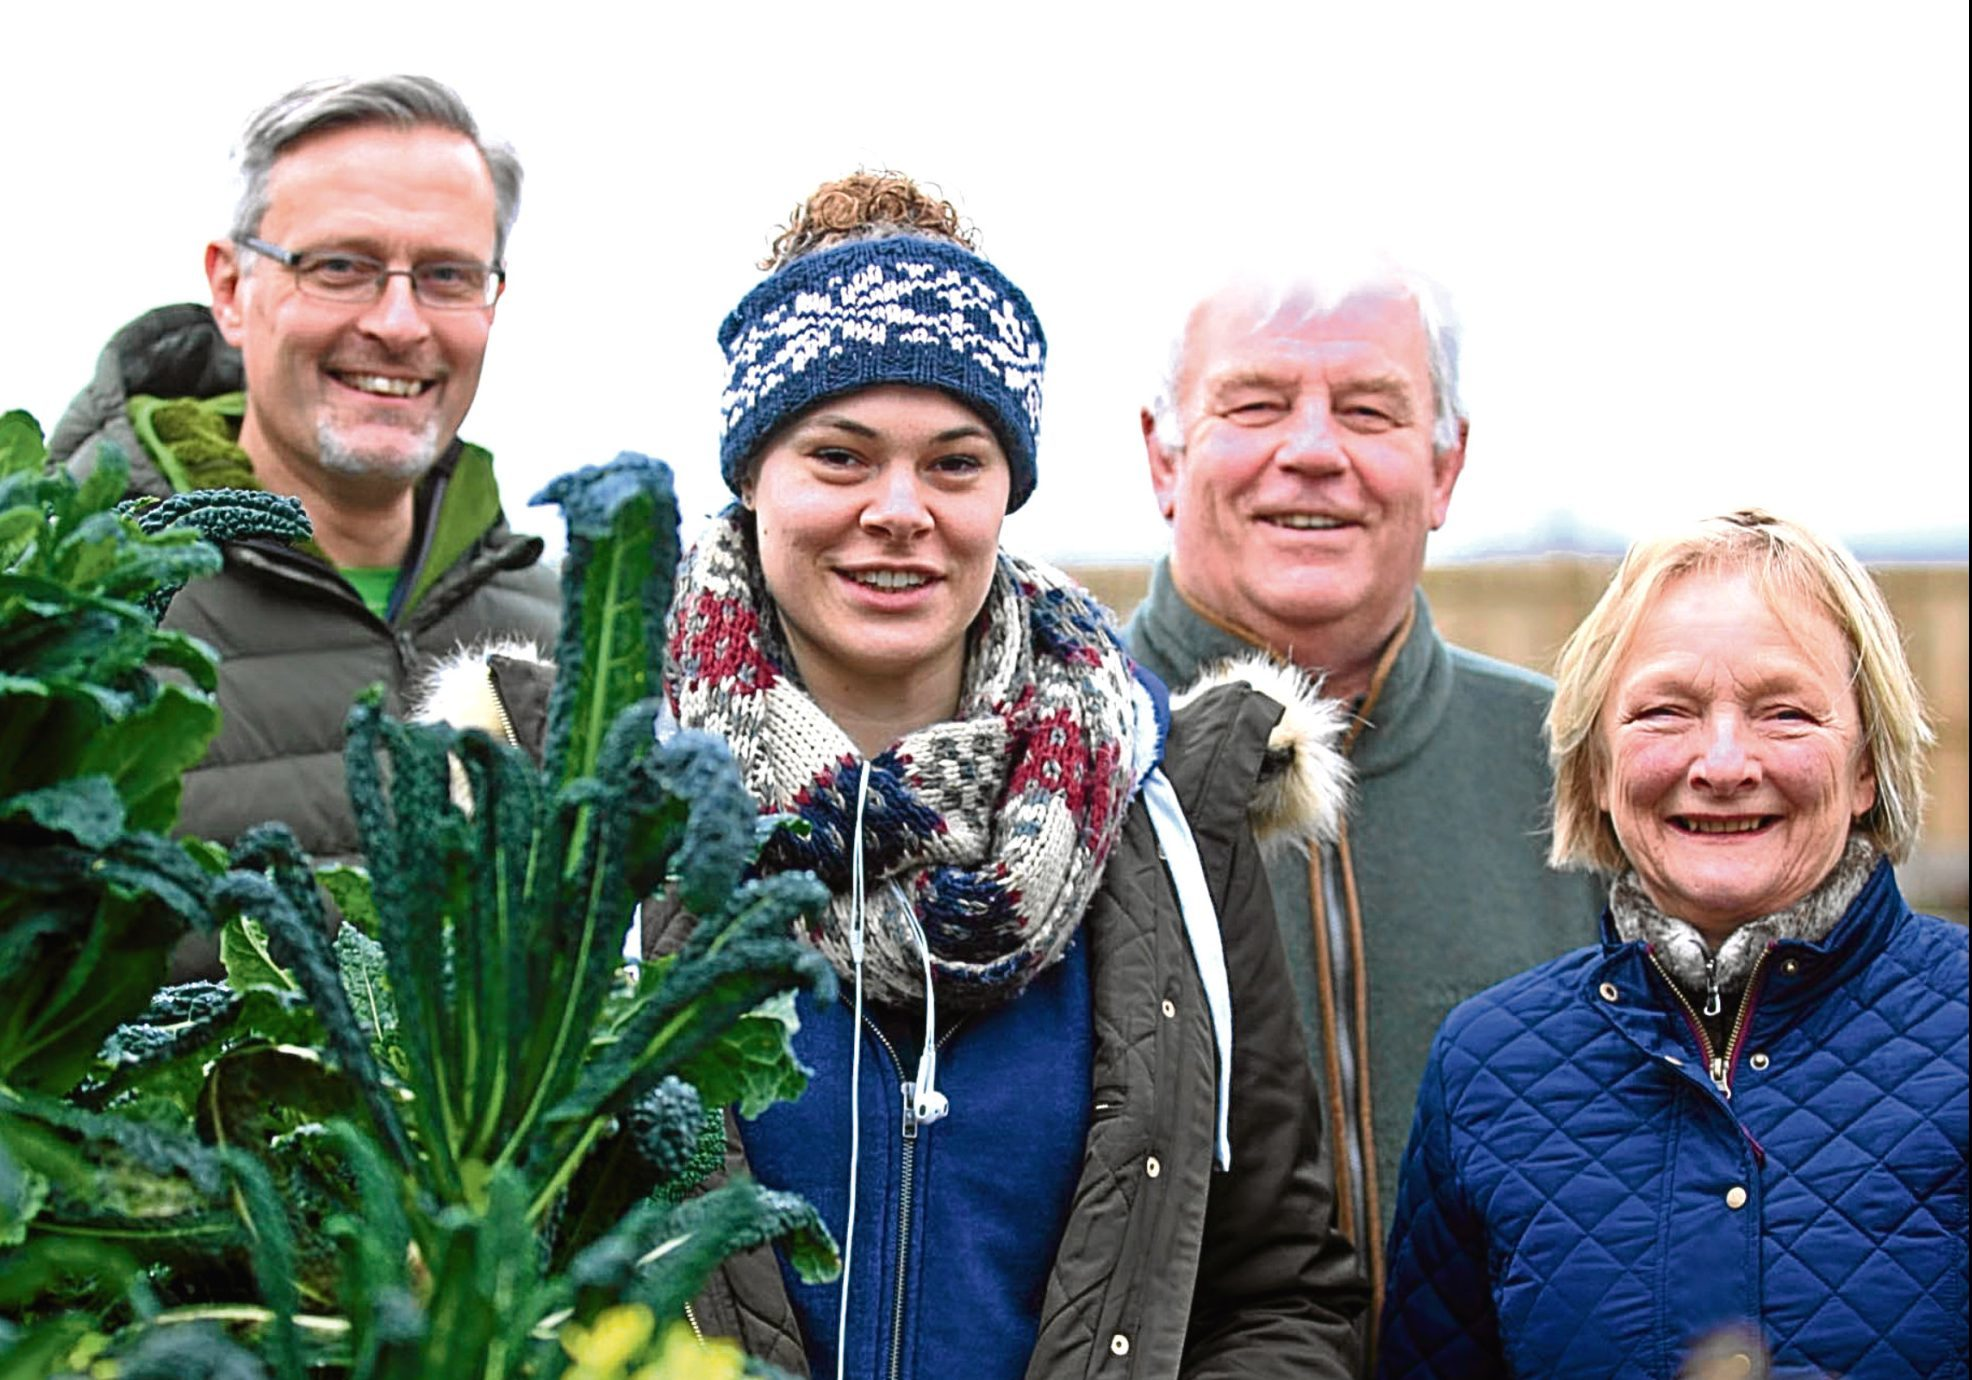 Alec Lyell and his wife Annie have set up a charity called Dundee Therapy Garden, for veterans in Dudhope Park Gardens.  Picture shows; Horticultural therapists Michael Snowden and Zisky Stovell with Alec (chairman) and Annie Lyell (trustee)